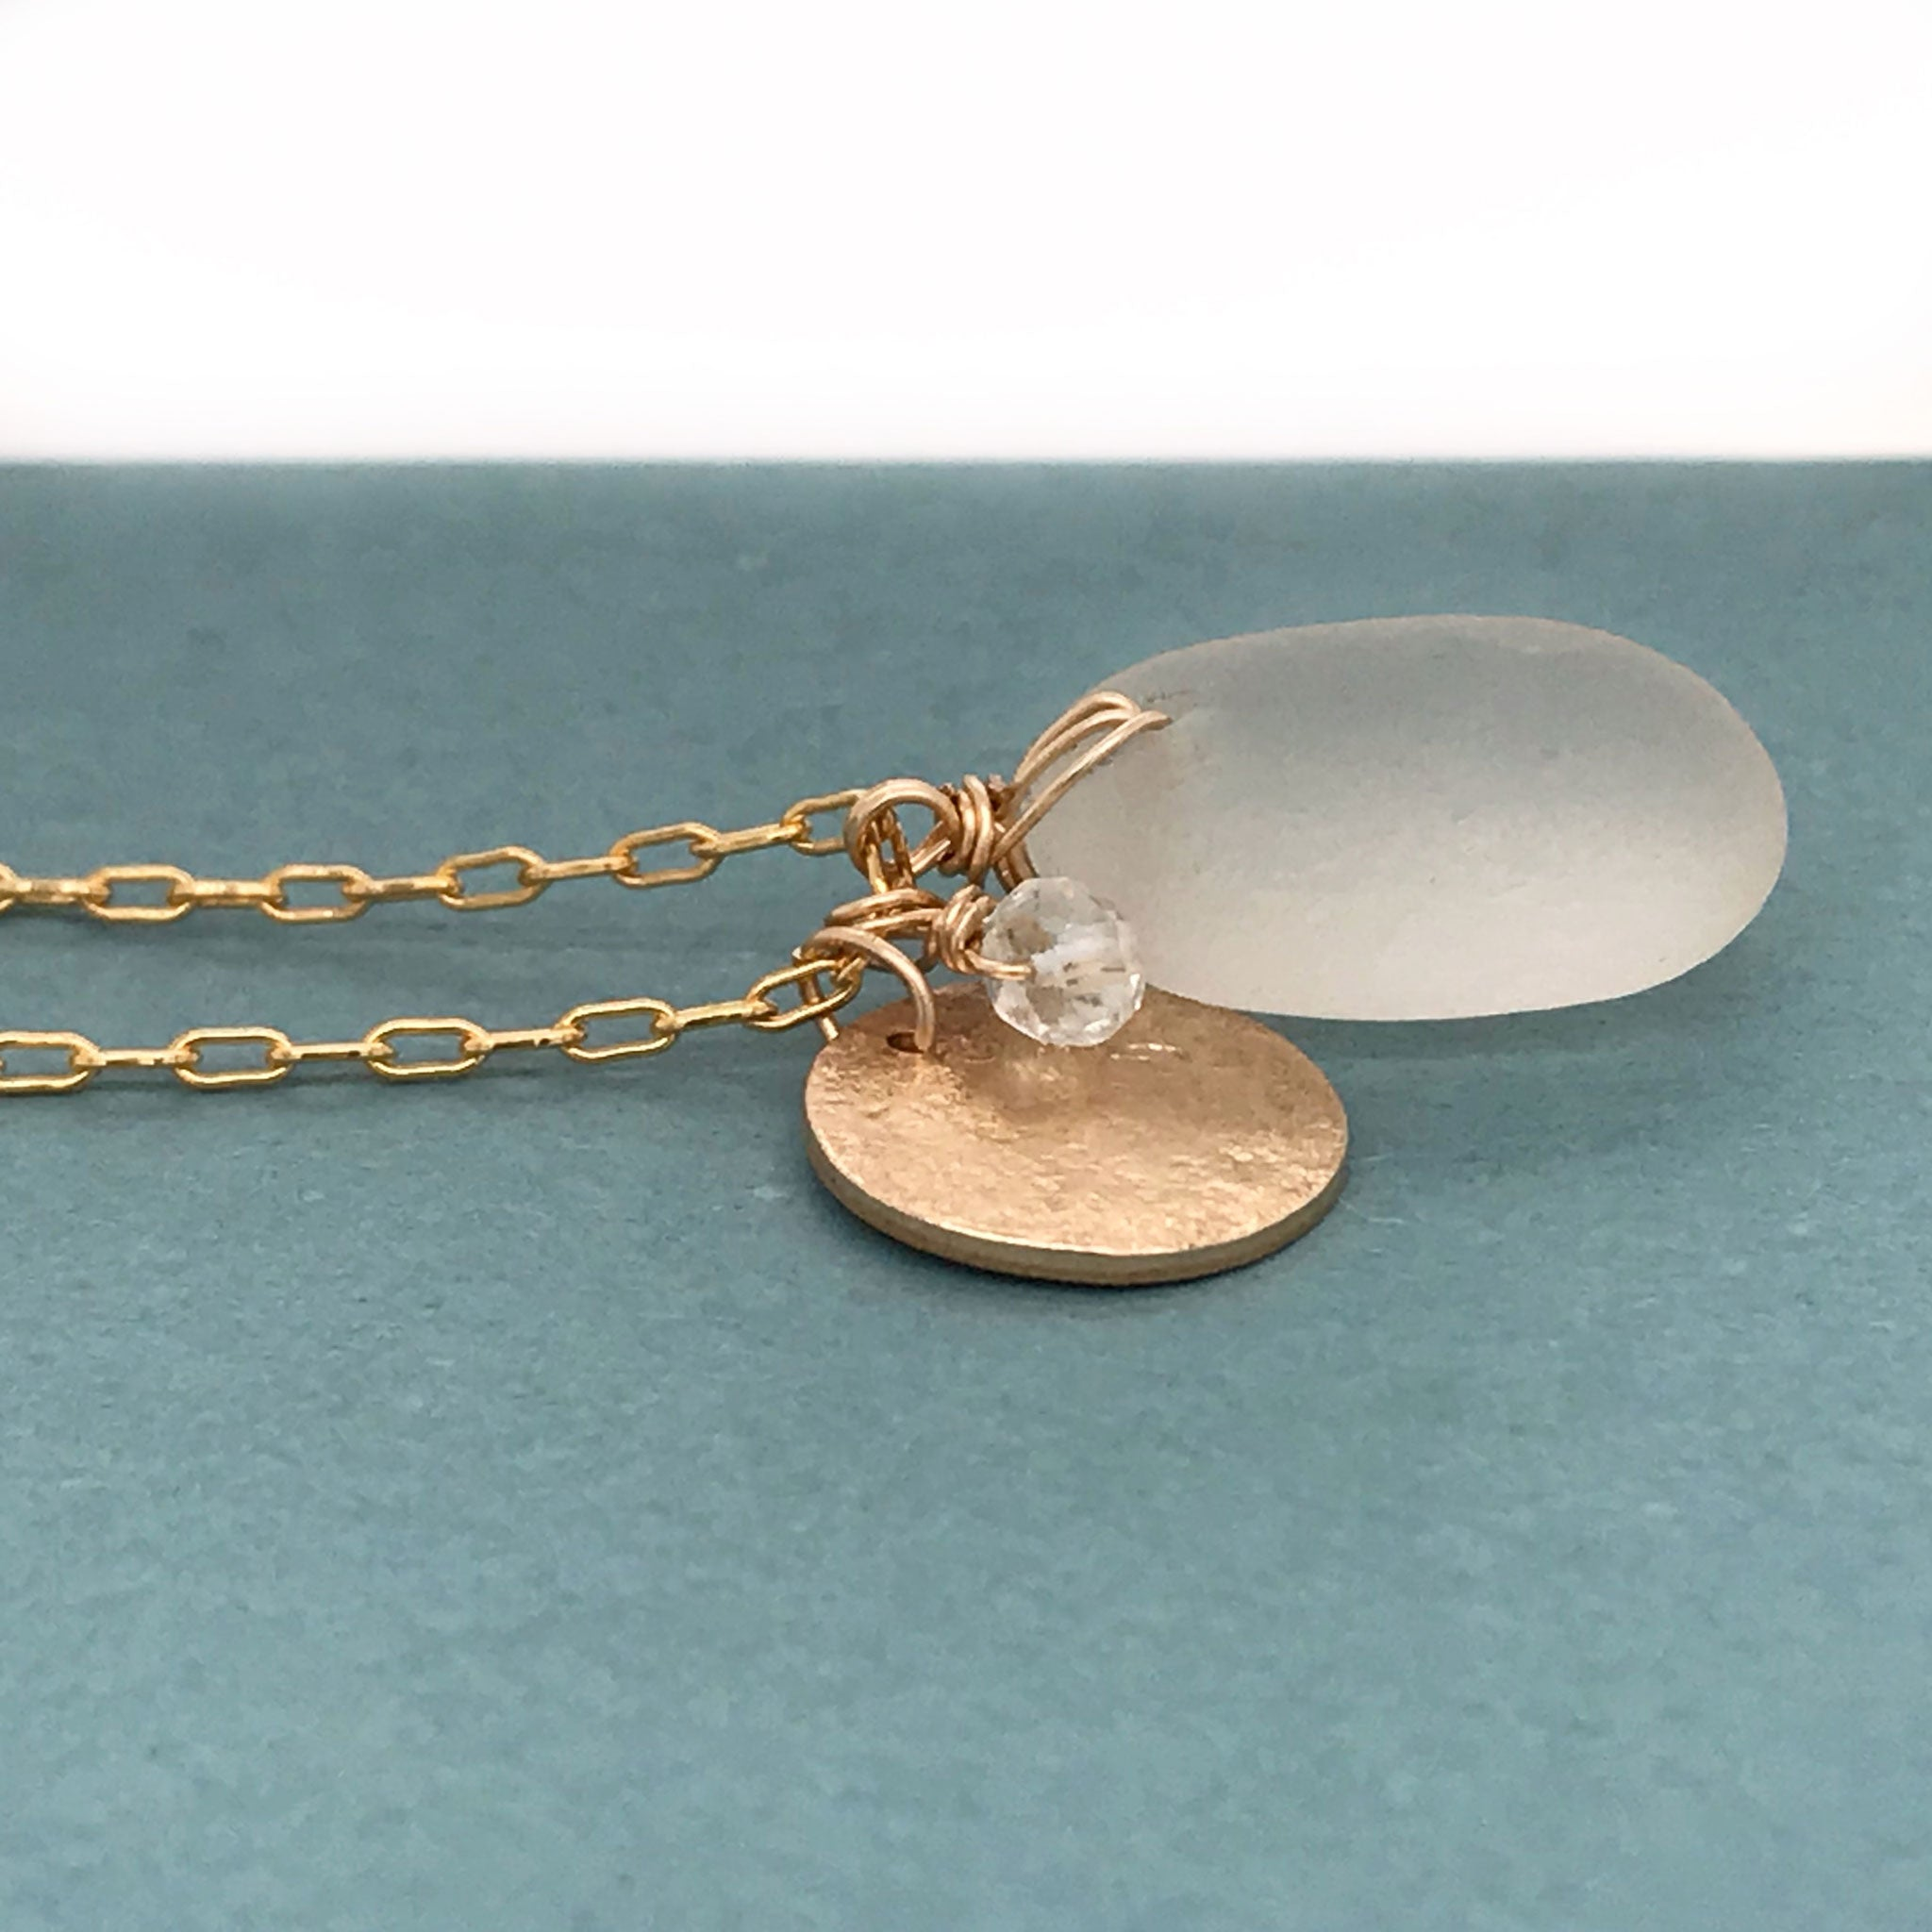 clear seaglass charm necklace with gold disc kriket broadhurst jewellery